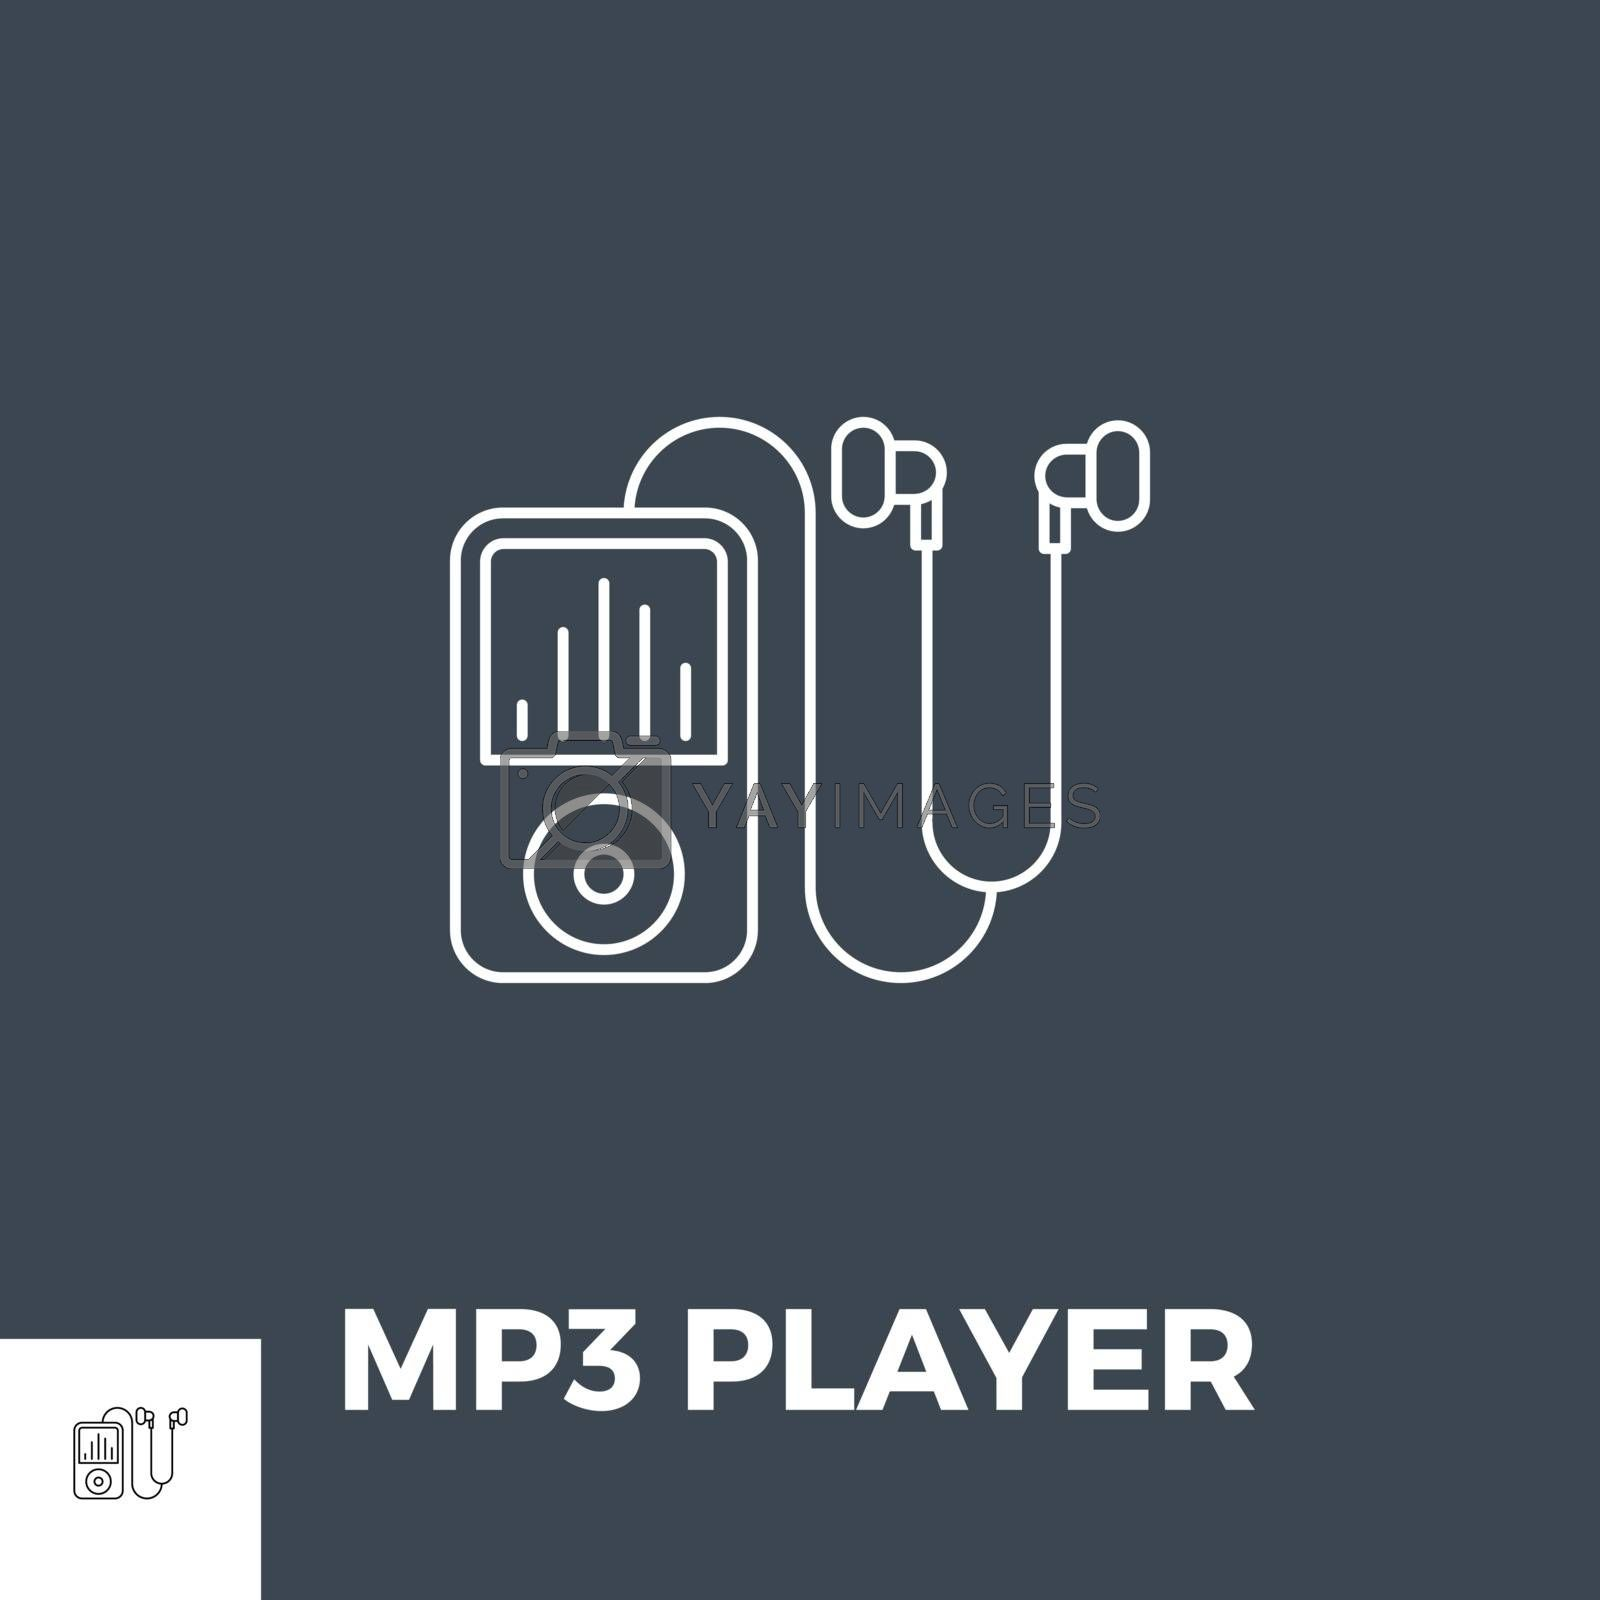 MP3 Player Icon Vector. Icon isolated on the black background. Editable EPS file. Vector illustration.